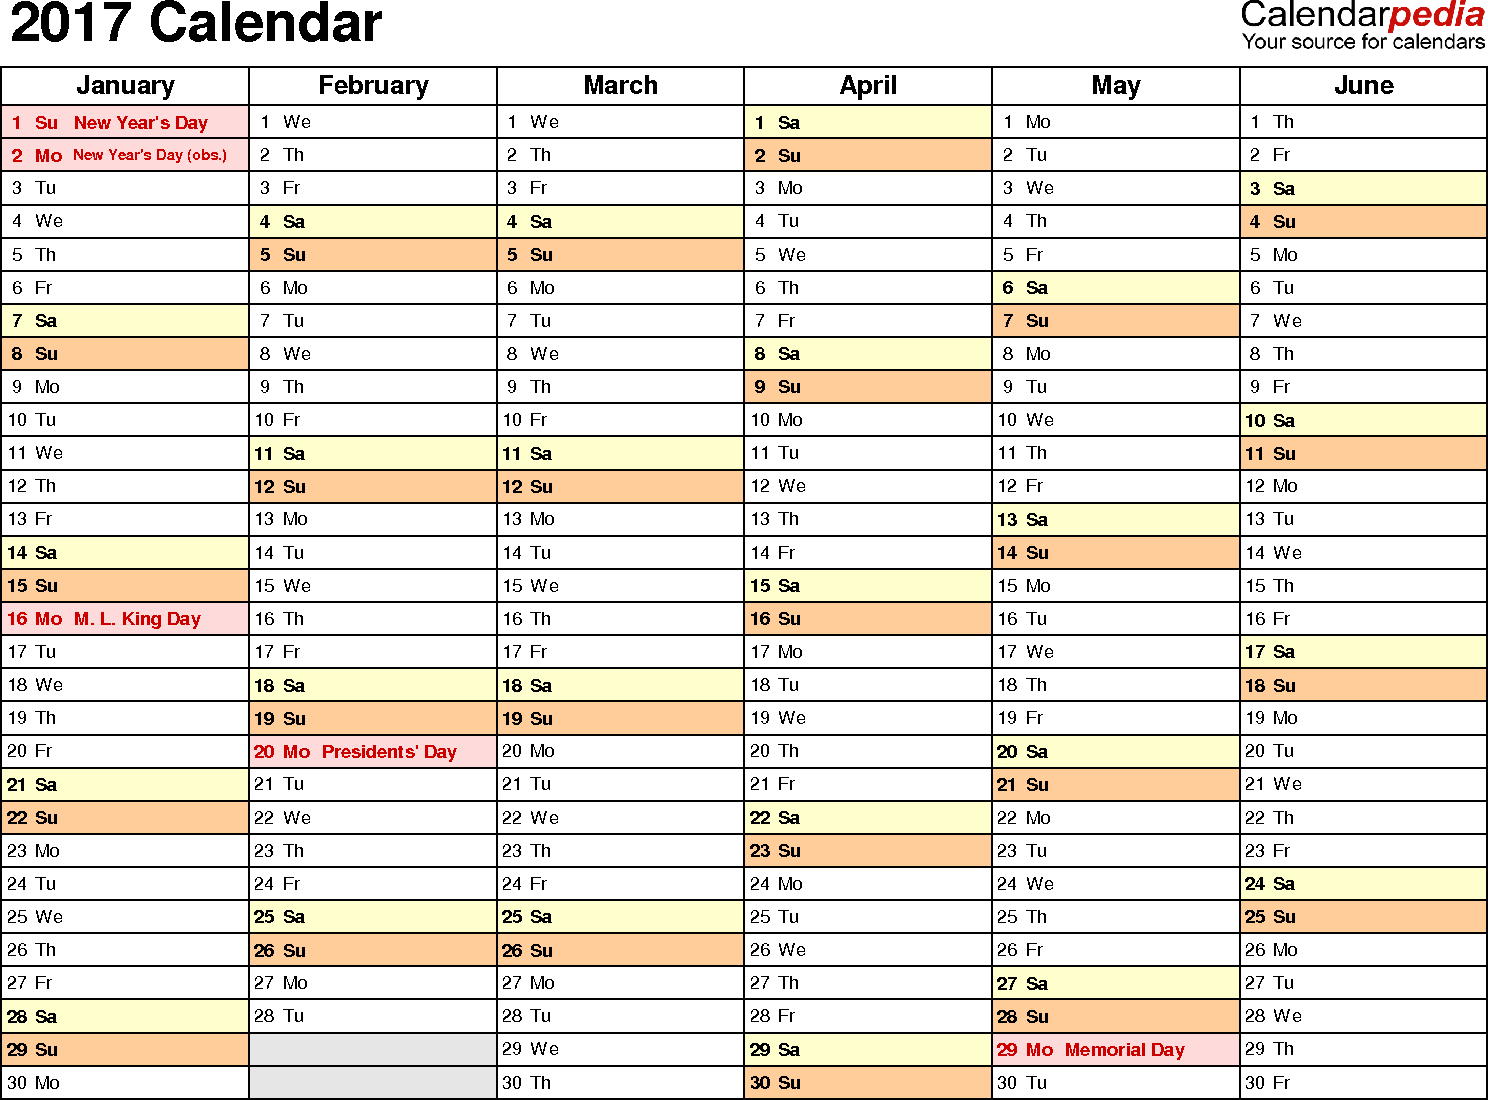 Ediblewildsus  Nice  Calendar  Download  Free Printable Excel Templates Xls With Exquisite Template   Calendar For Excel Months Horizontally  Pages Landscape Orientation With Charming Excel To Image Also Convert To Table Excel In Addition How To Do Percentages In Excel  And Convert Time Excel As Well As Gamma Function In Excel Additionally Excel Vba Color Codes From Calendarpediacom With Ediblewildsus  Exquisite  Calendar  Download  Free Printable Excel Templates Xls With Charming Template   Calendar For Excel Months Horizontally  Pages Landscape Orientation And Nice Excel To Image Also Convert To Table Excel In Addition How To Do Percentages In Excel  From Calendarpediacom